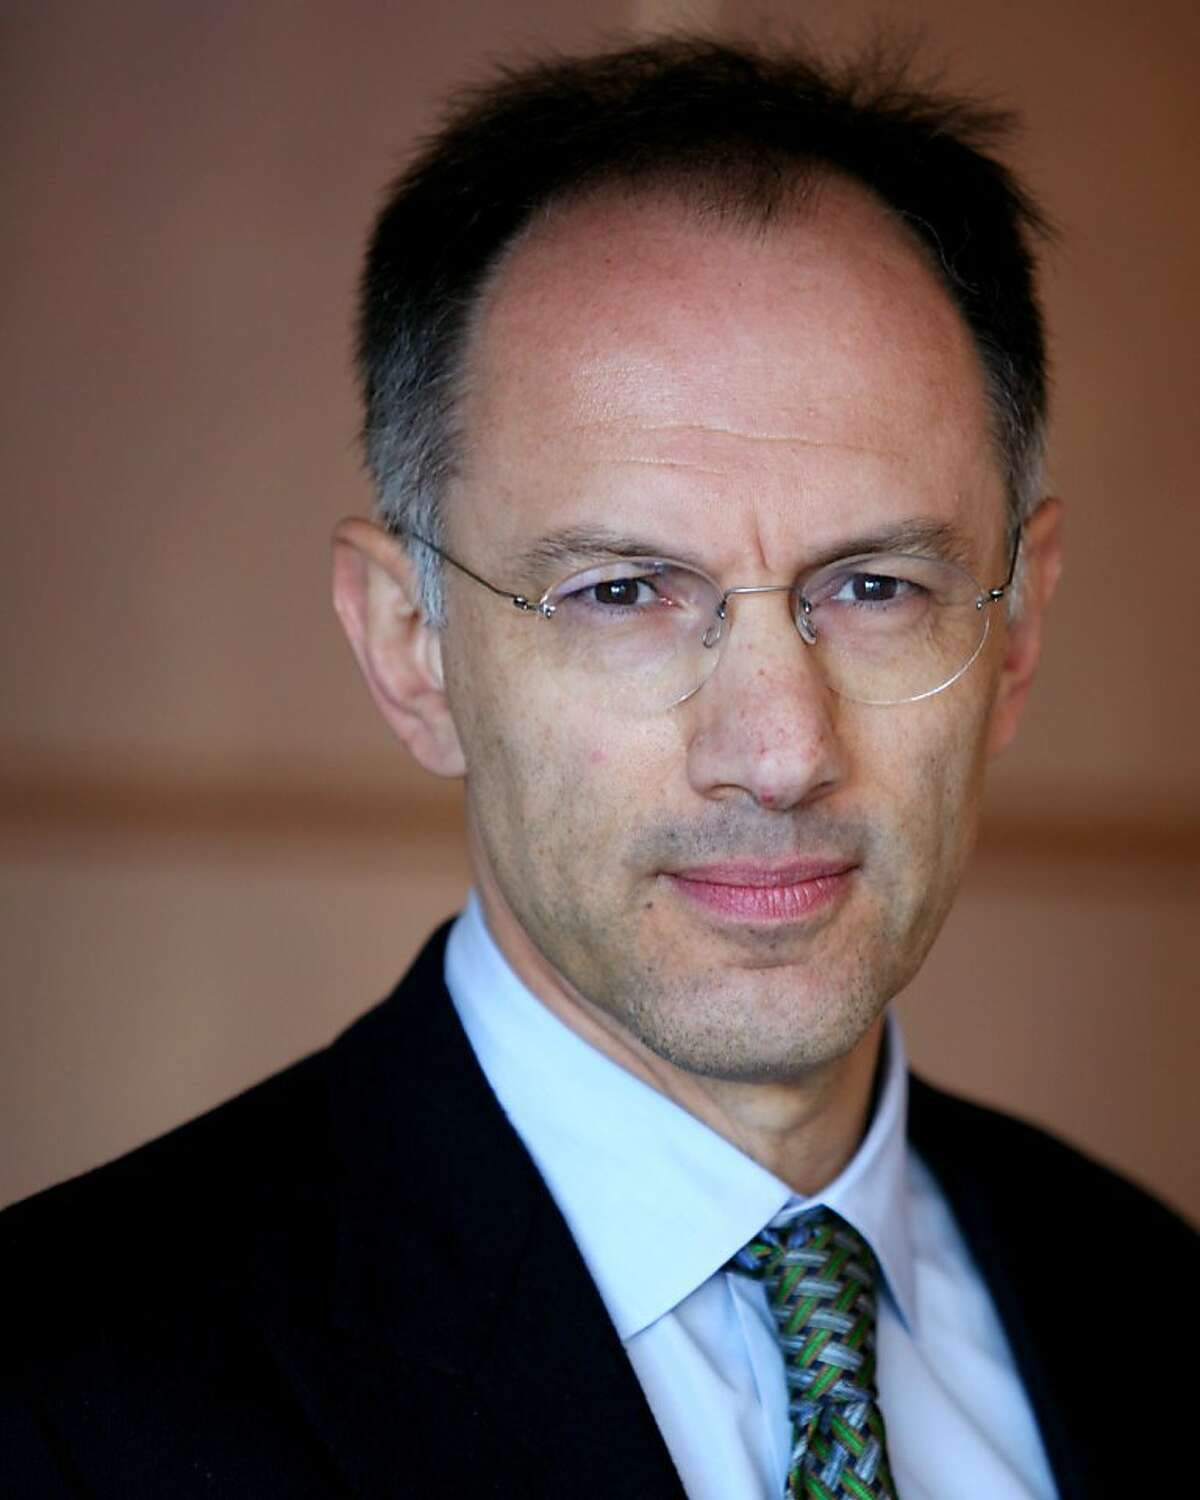 Michael Moritz is a venture capitalist at Sequoia Capital focusing on software and services investments. Prior to joining Sequoia Capital in 1986, he worked in a variety of positions at Time Warner and was a Founder of Technologic Partners. Michael Moritz is a venture capitalist at Sequoia Capital focusing on software and services investments. Prior to joining Sequoia Capital in 1986, he worked in a variety of positions at Time Warner and was a Founder of Technologic Partners. handout photo courtesy sequoia partners Ran on: 12-22-2008 Mike Moritz, a partner in Sequoia Capital, still finds a few companies to invest in. Ran on: 12-22-2008 The cracked fuselage of a Continental jet at Denver's airport